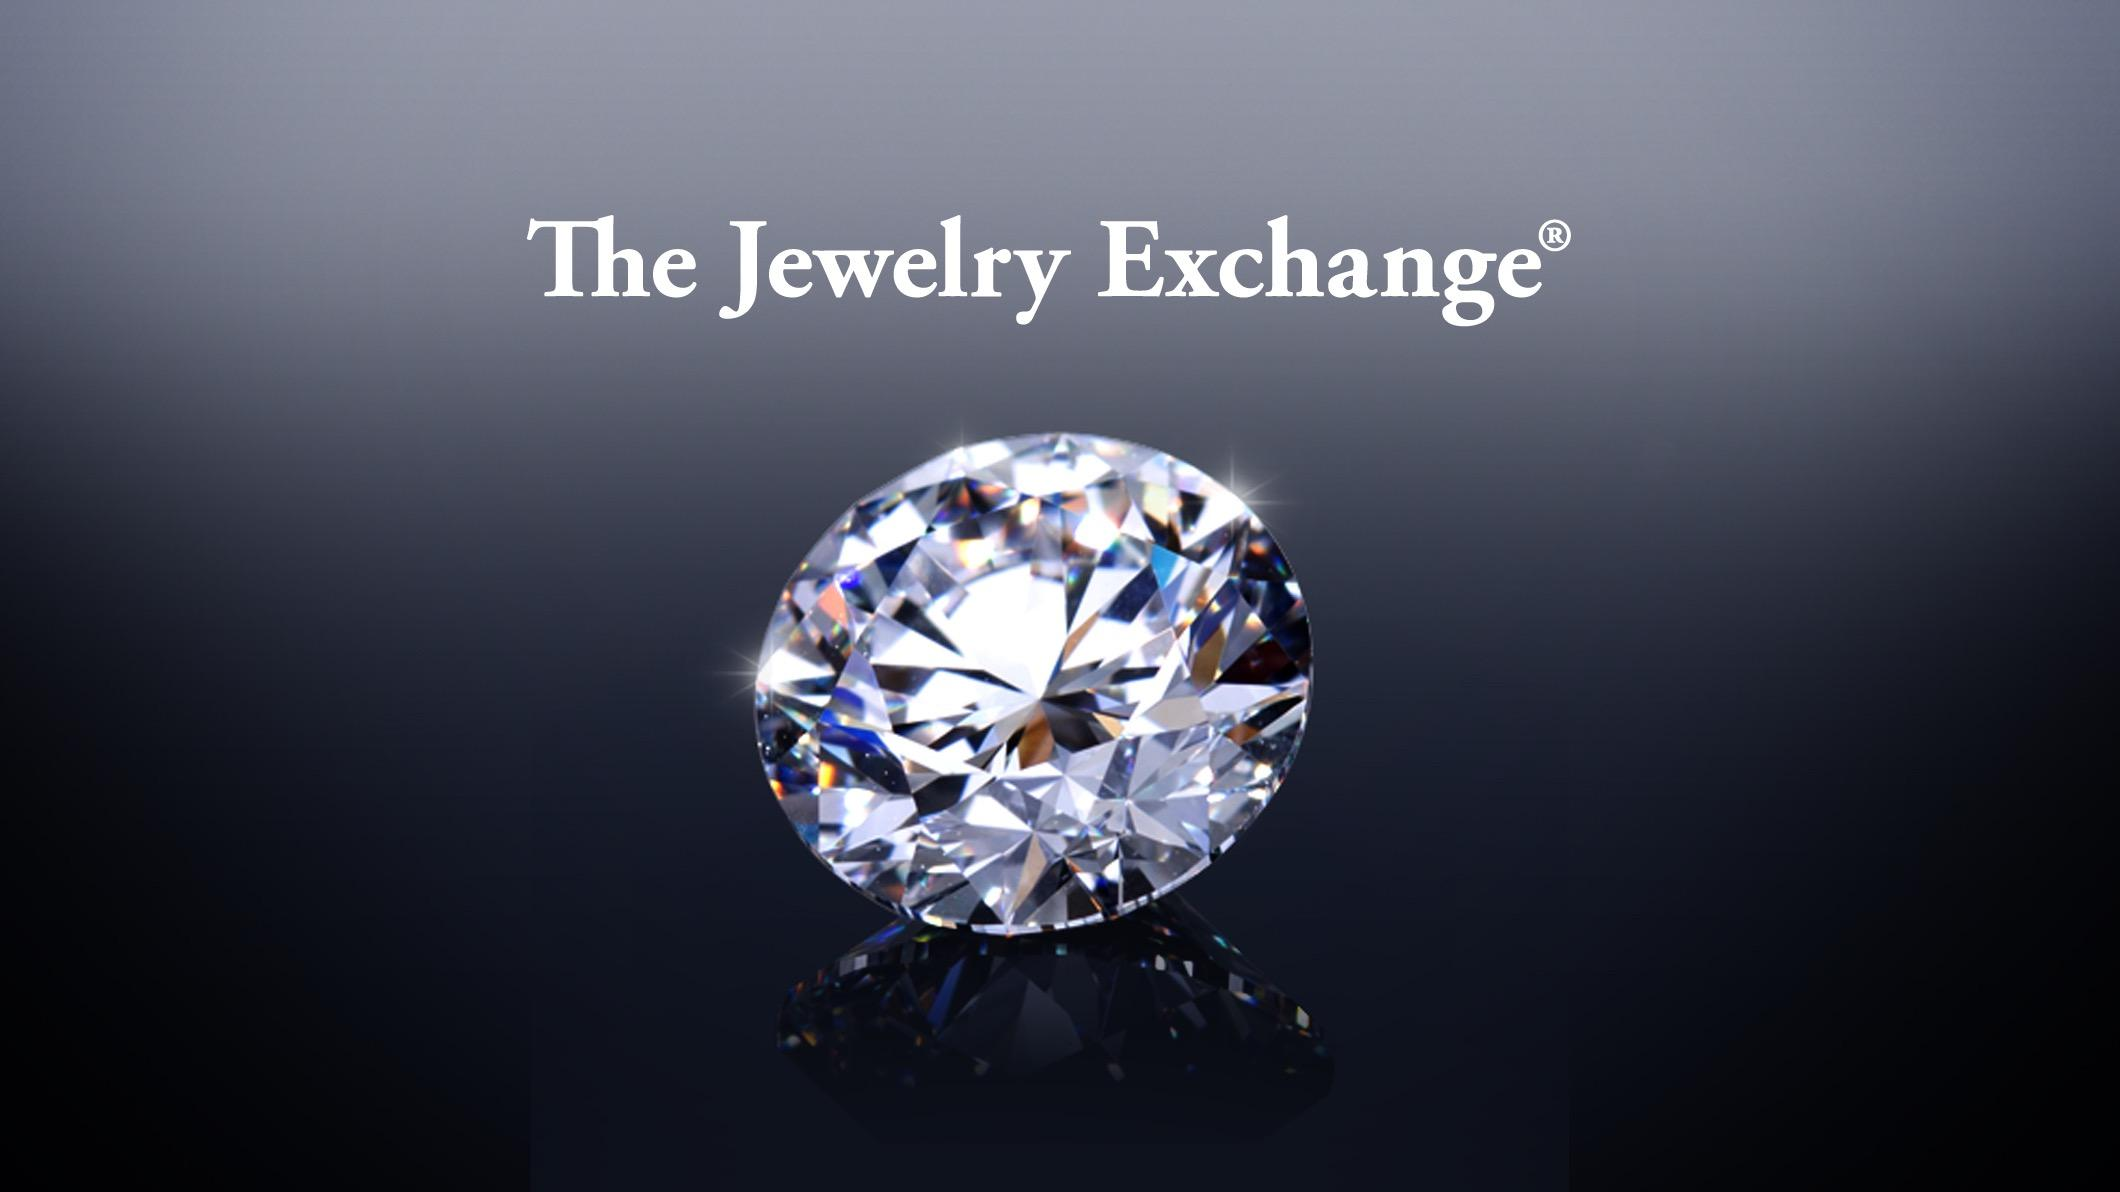 the jewelry exchange renton wa company page